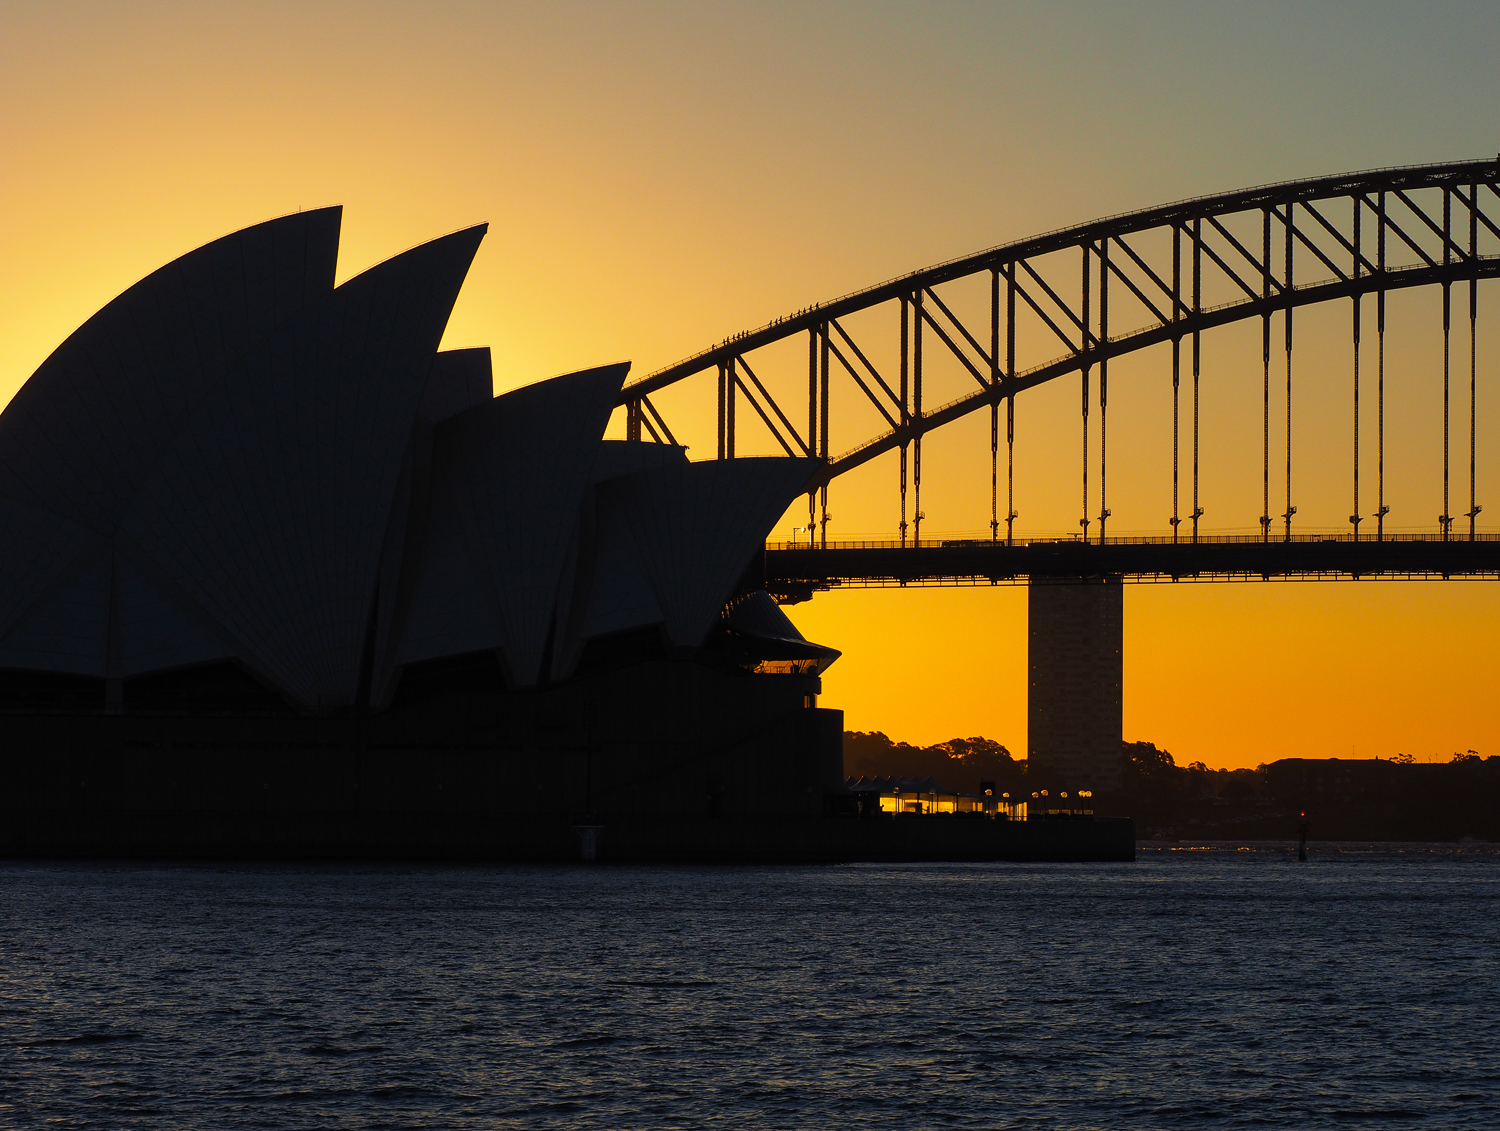 Sydney Opera House and Harbour Bridge in sunset silhouette. 23 May 2016. 1/800sec, f/9, ISO 200